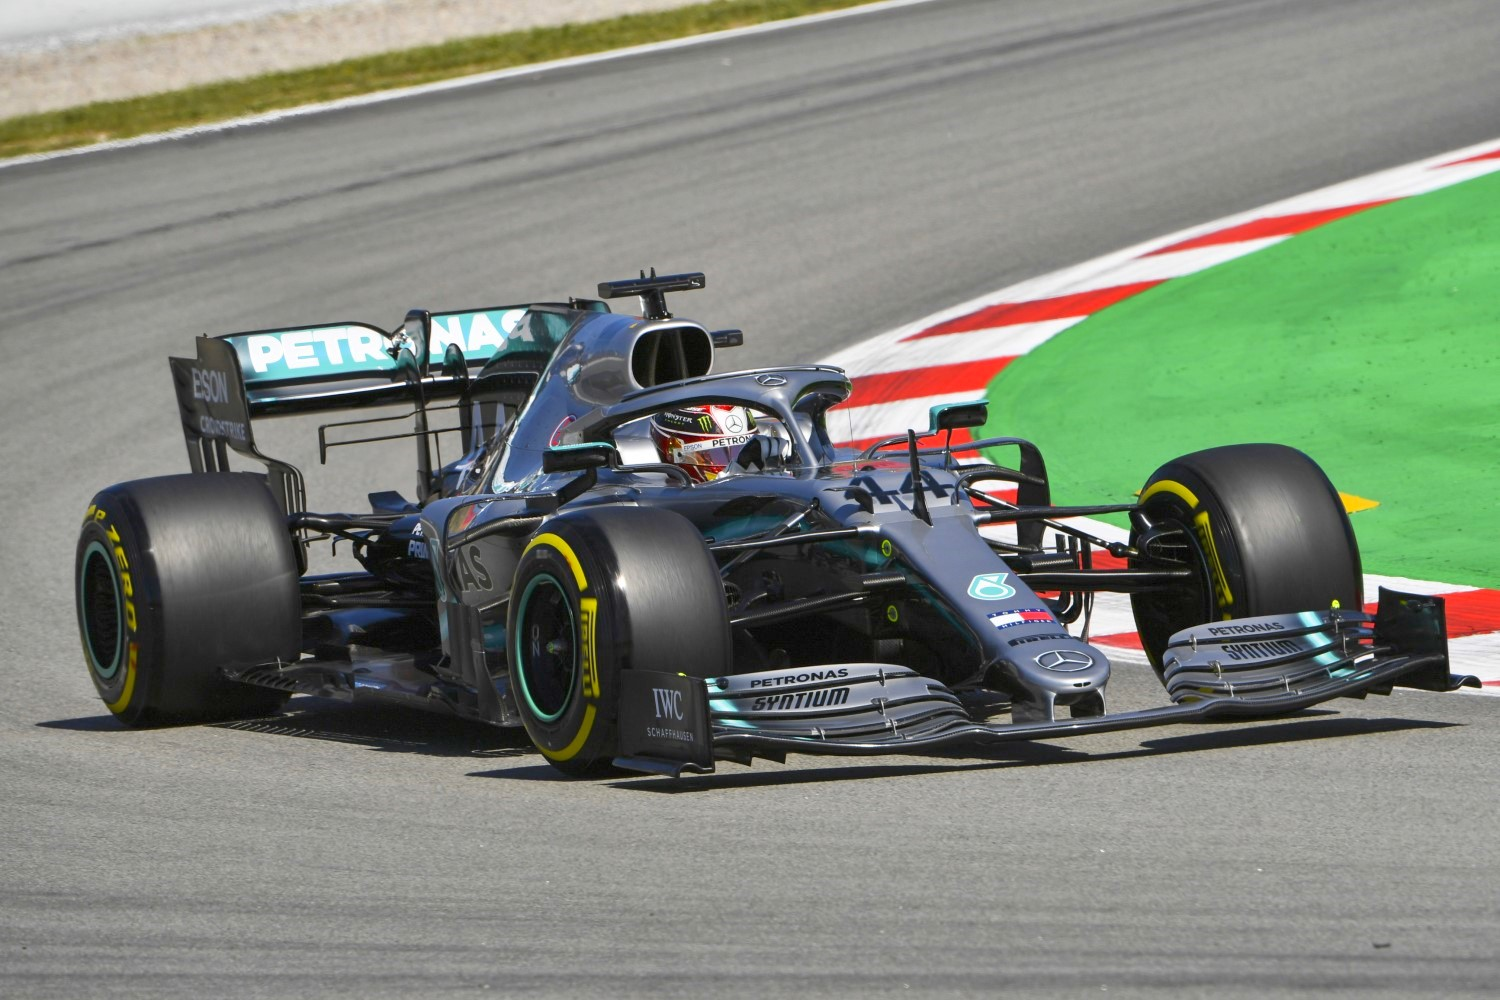 Mercedes is bringing a more powerful engine to Montreal and will likely bury Ferrari again